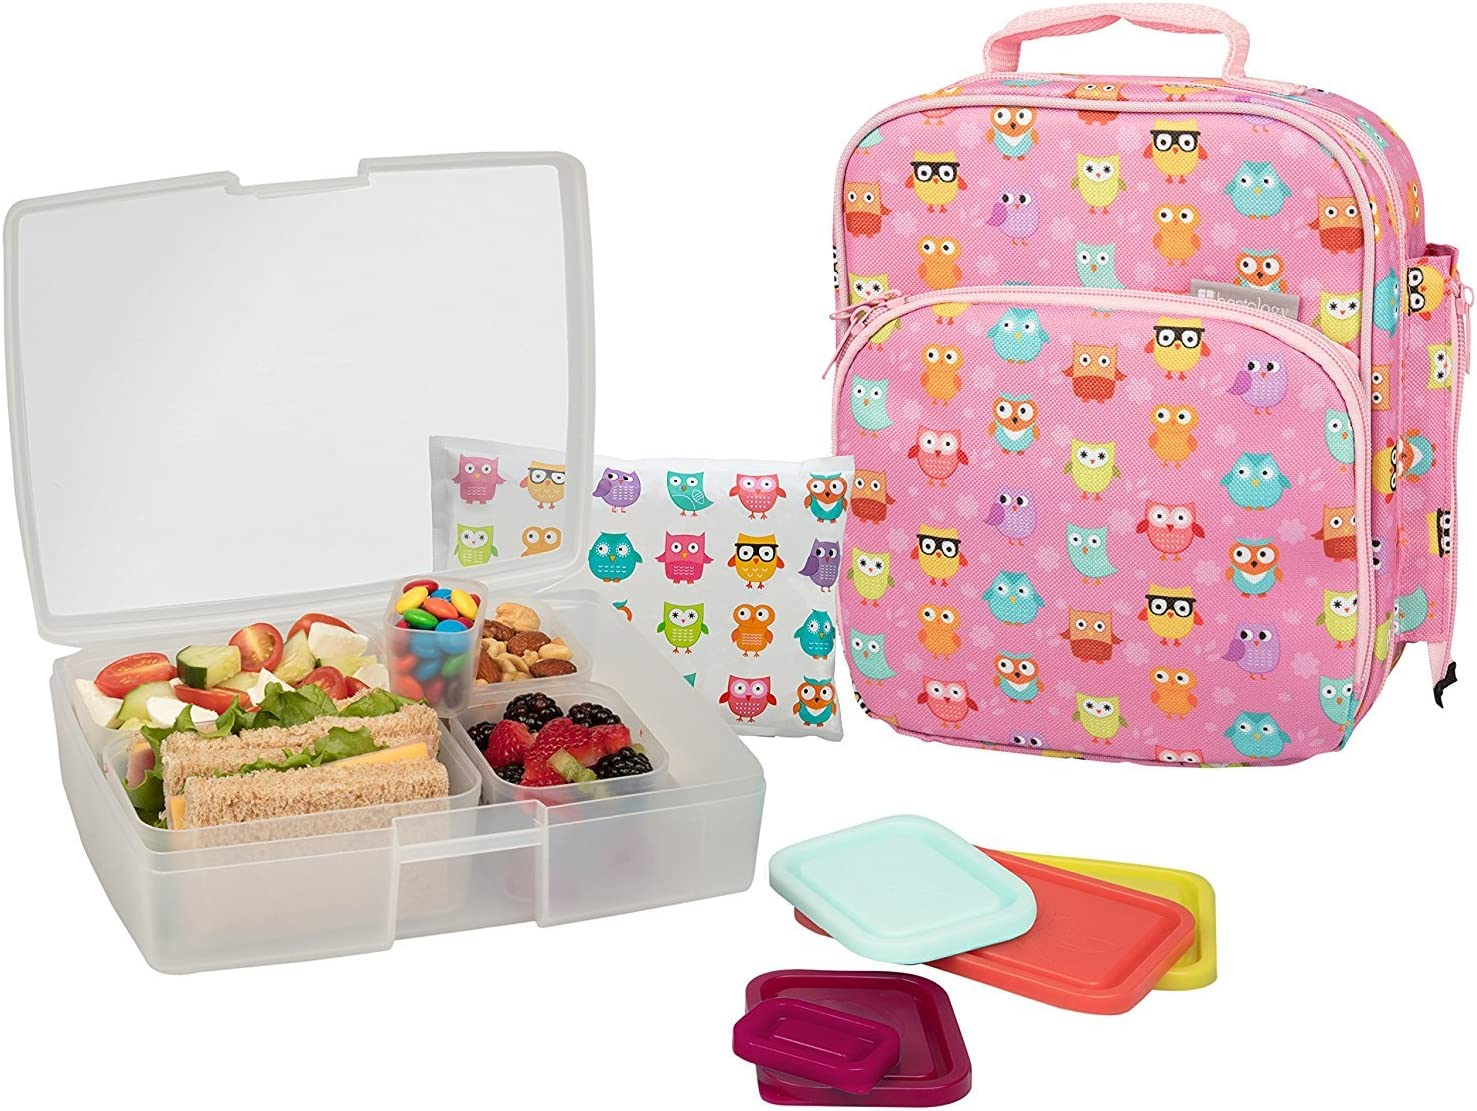 Bentology Lunch Bag and Box Set for Girls, 9 Pieces Total - Kids Insulated Lunchbox Tote, Bento Box, 5 Containers and Ice Pack - Owl